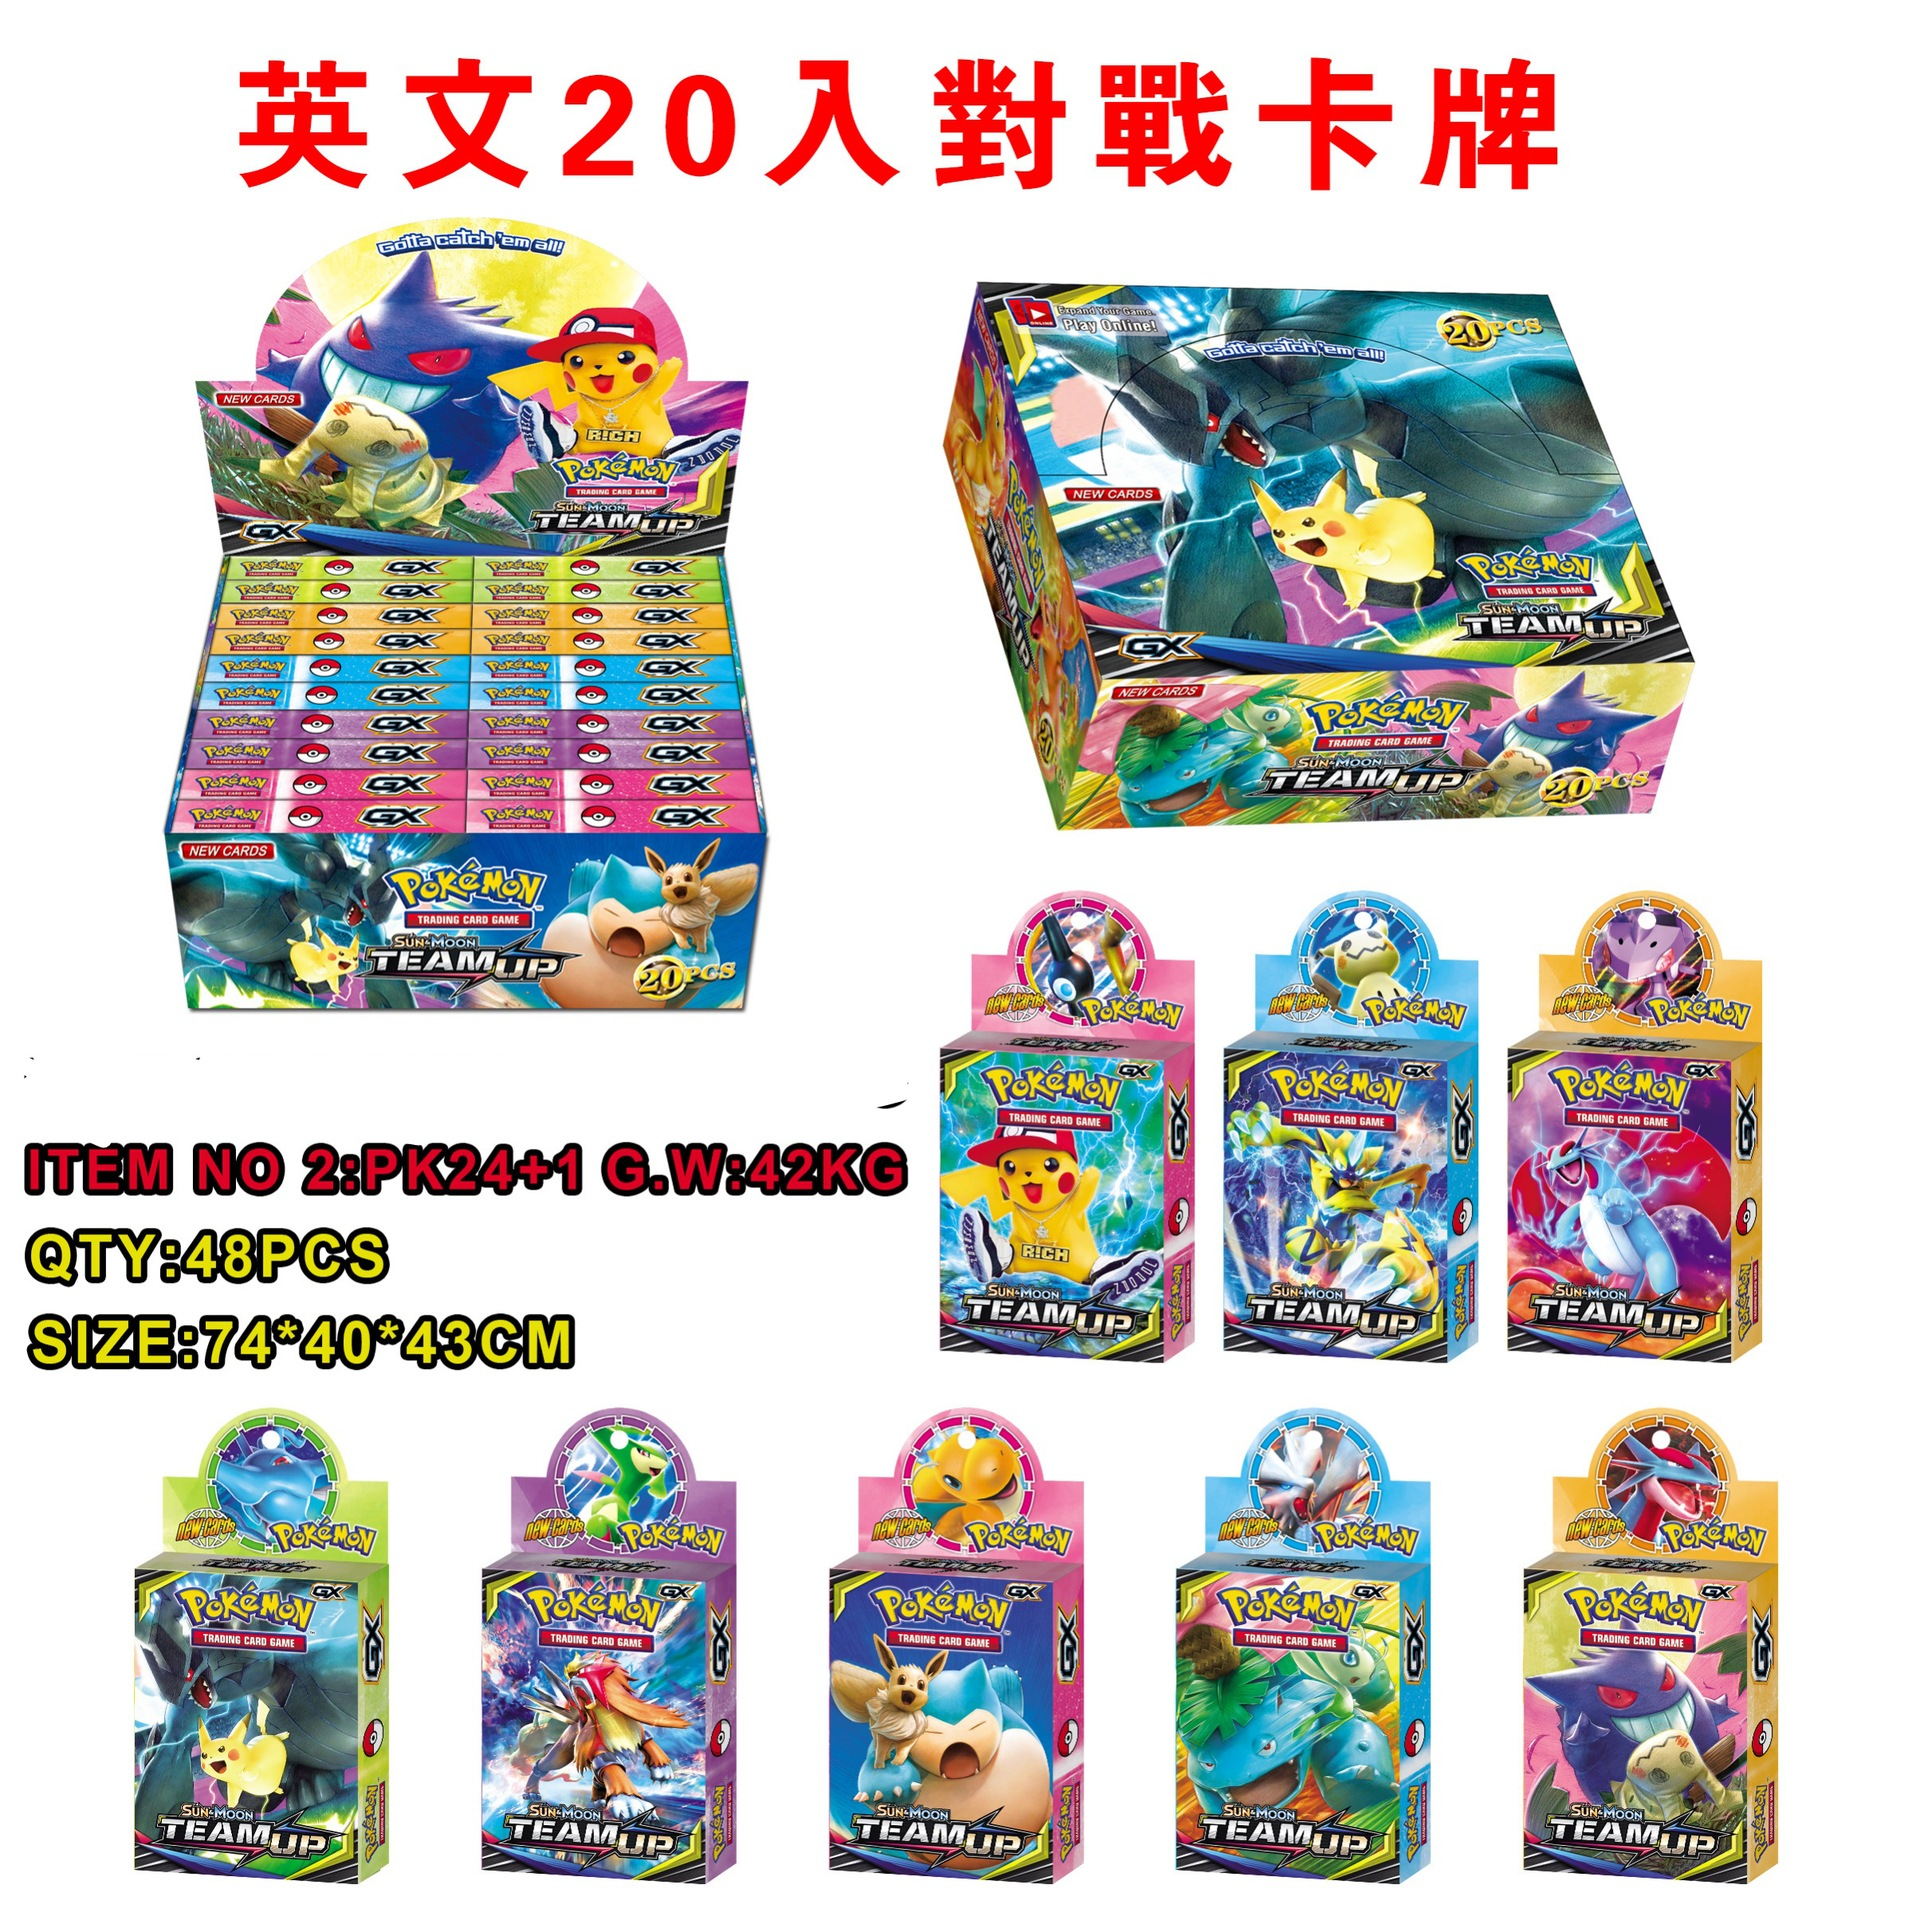 500pcs Newest TAKARA TOMY Pet Pokemon Cards Contain Flash Card Pokemon TEAM UP Cards Kids Toys Pokemon Gx Cards